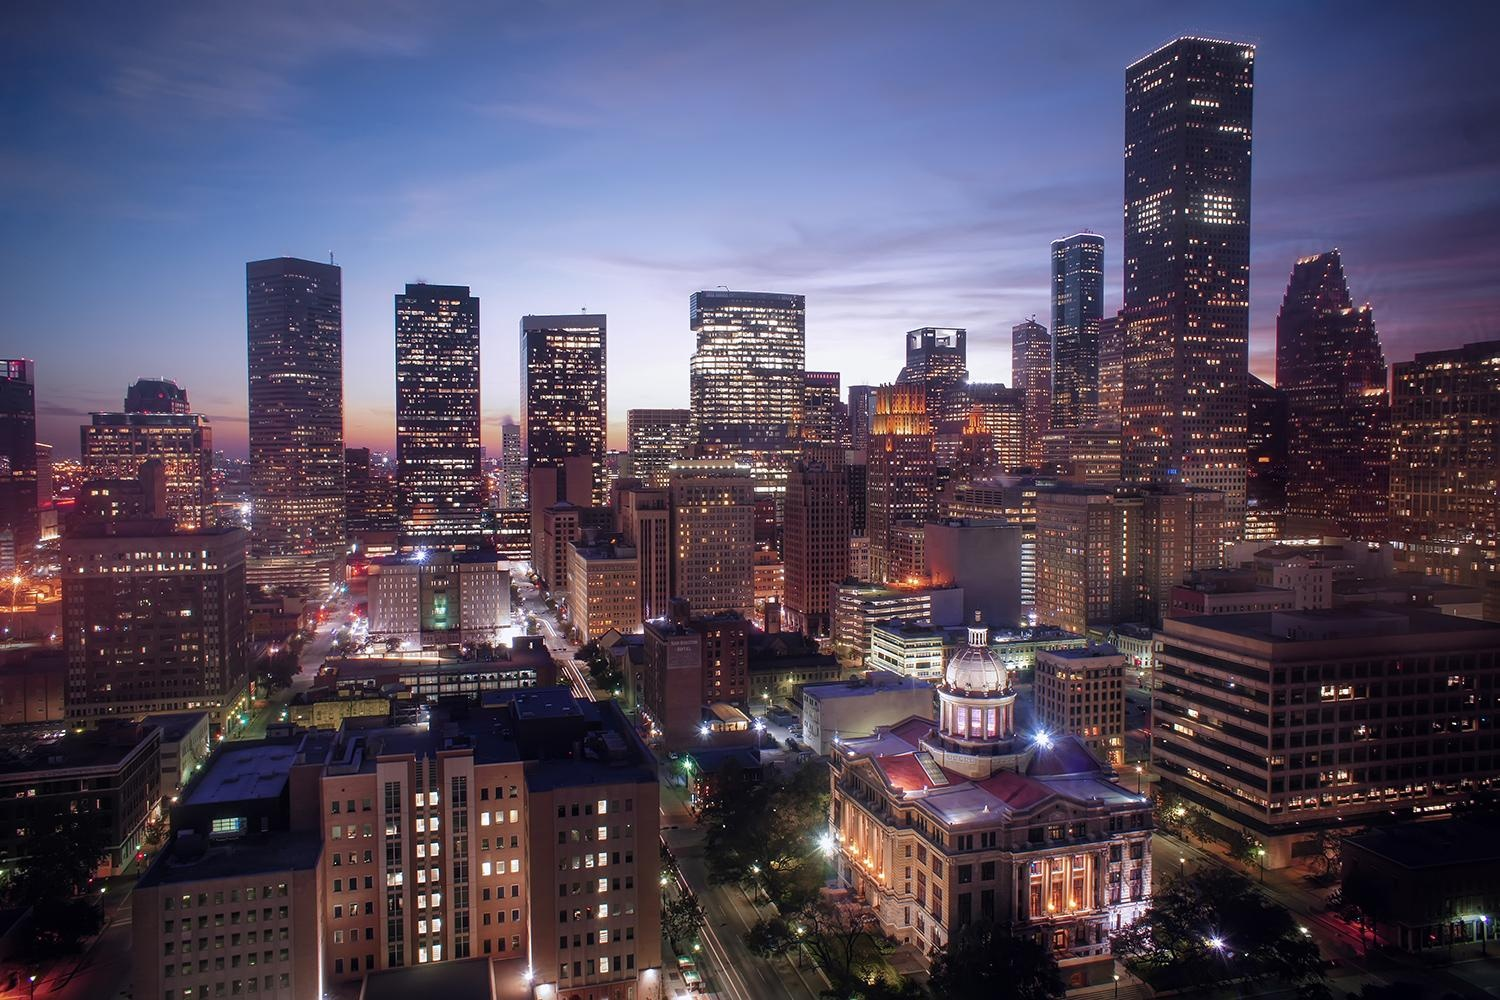 Tech cities in Texas are the fastest growing in the U.S.